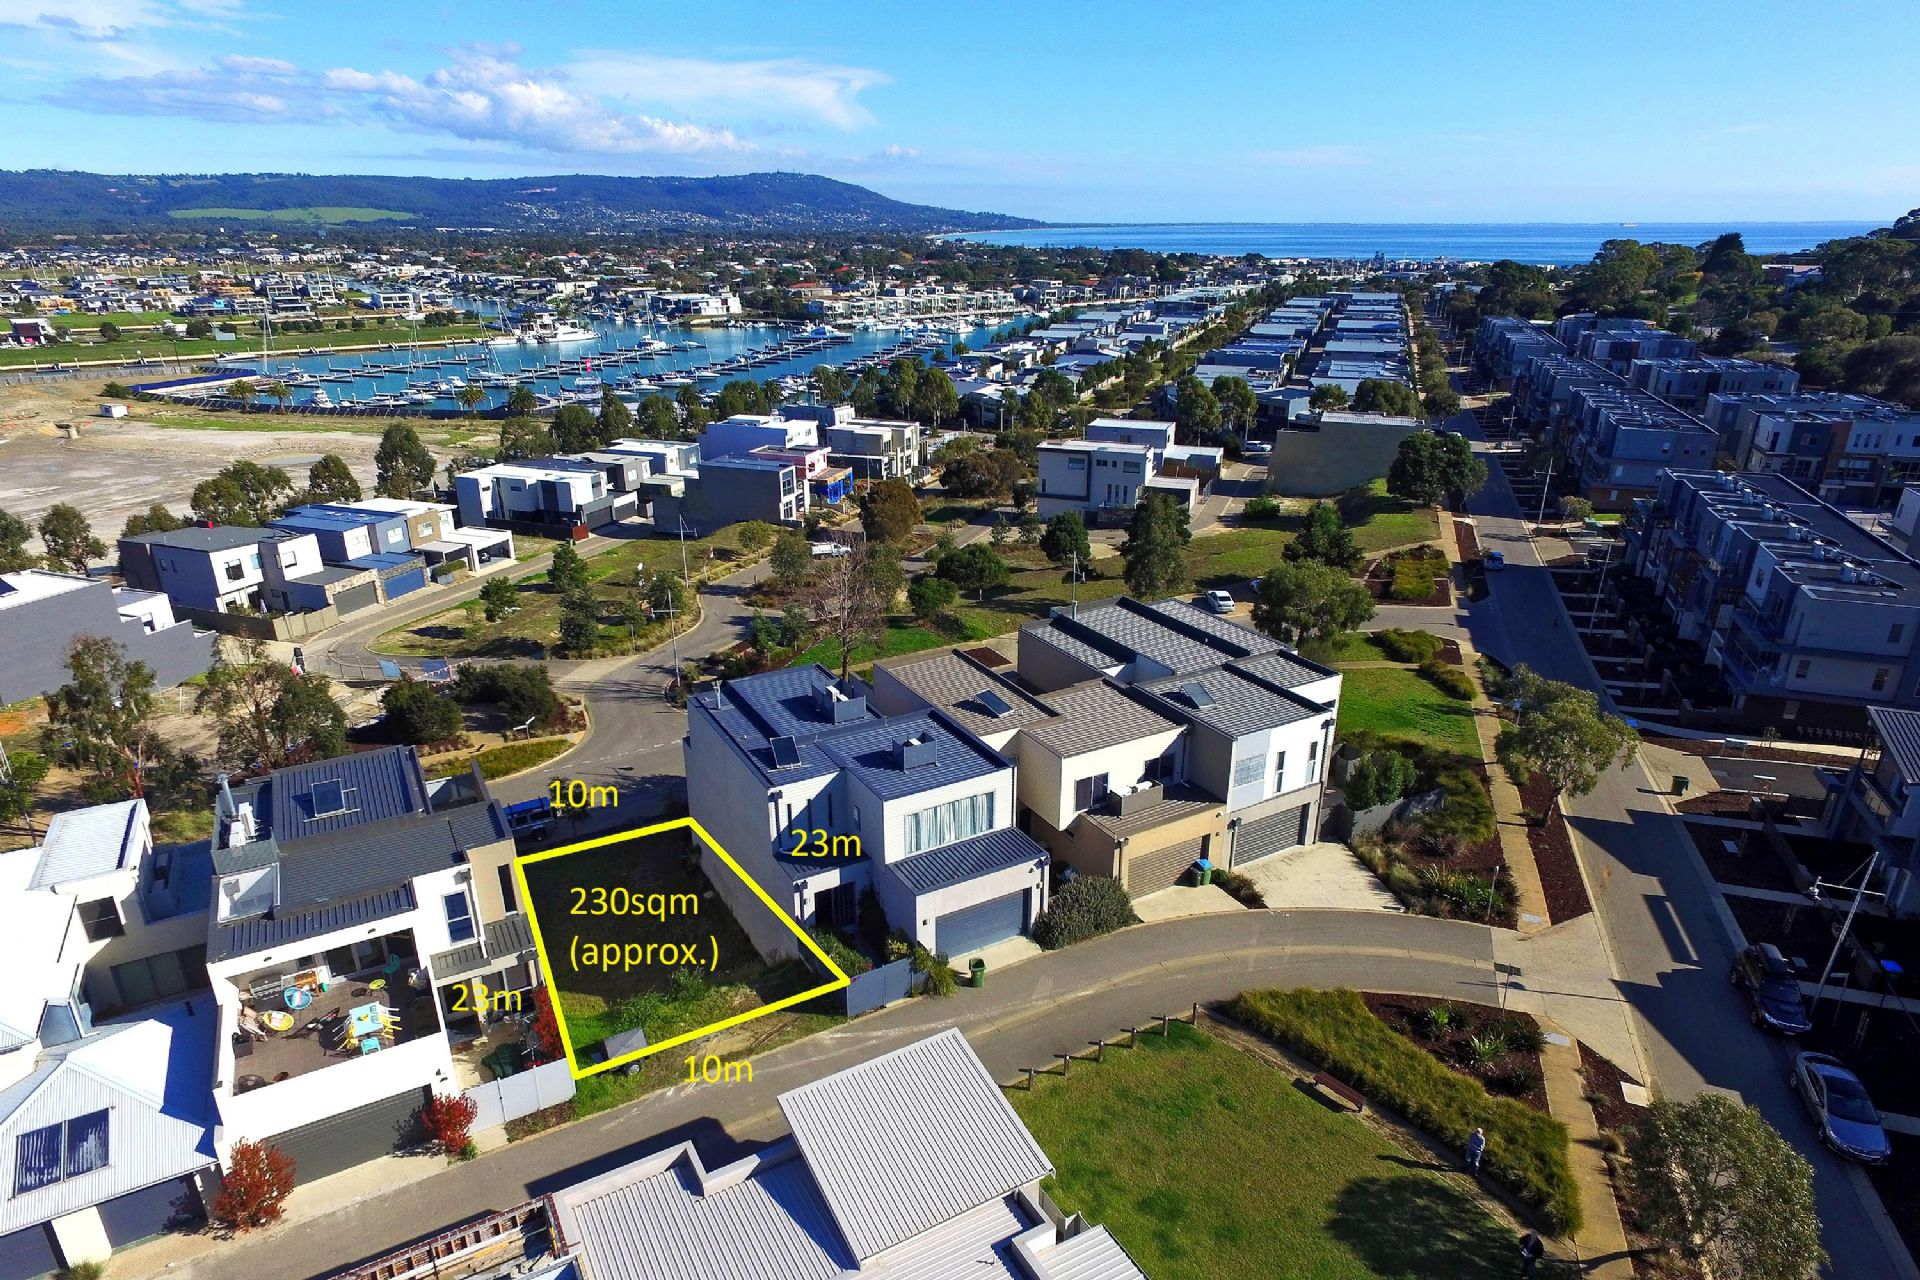 Lot 447/24 The Cove, SAFETY BEACH, VIC, 3936 - Image